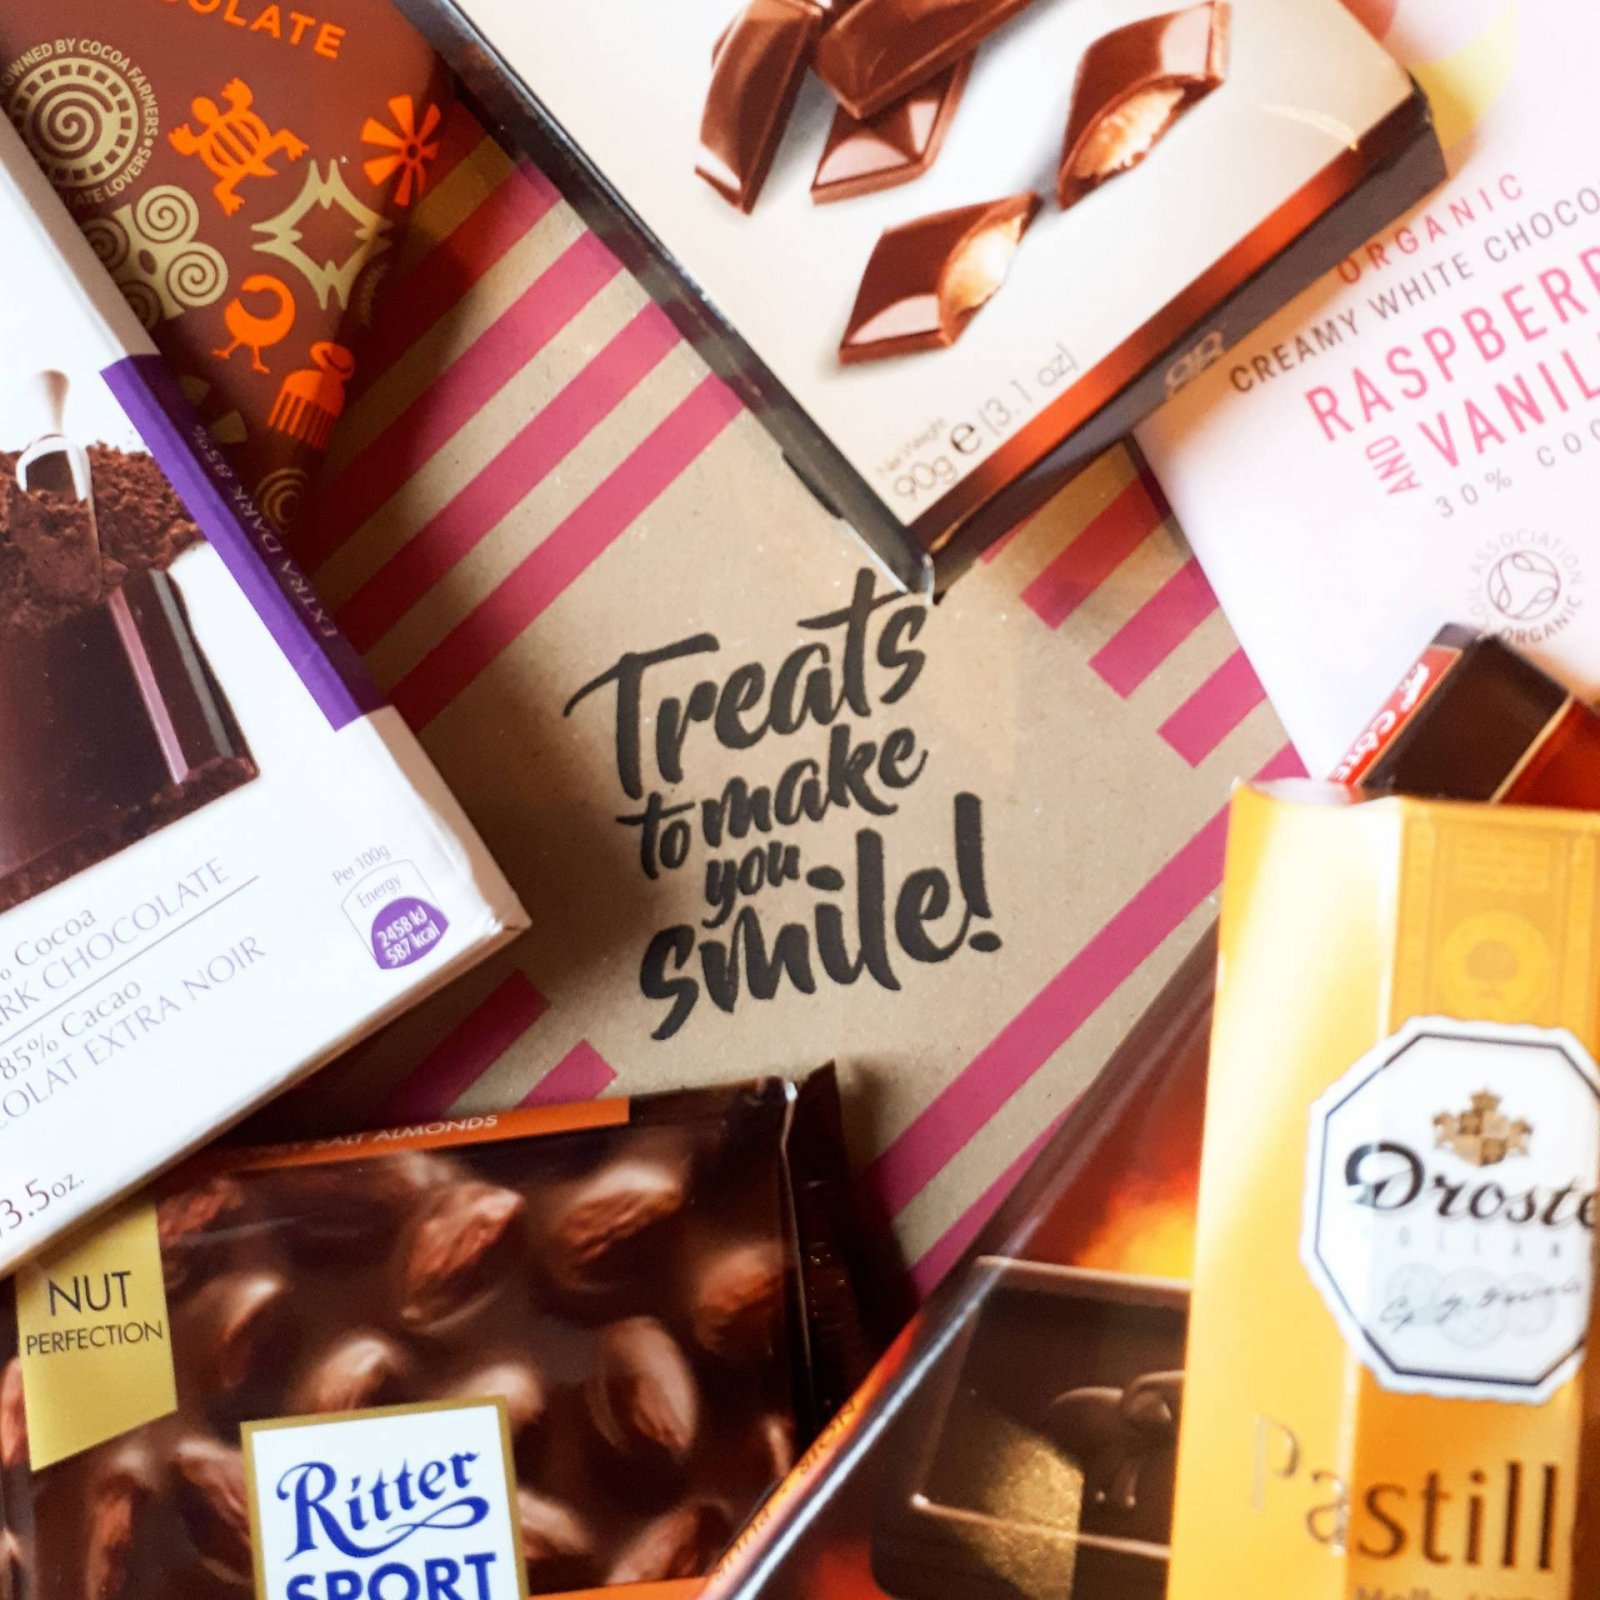 Chocolate or Sweet Treats to Make you Smile from Treatbox.com